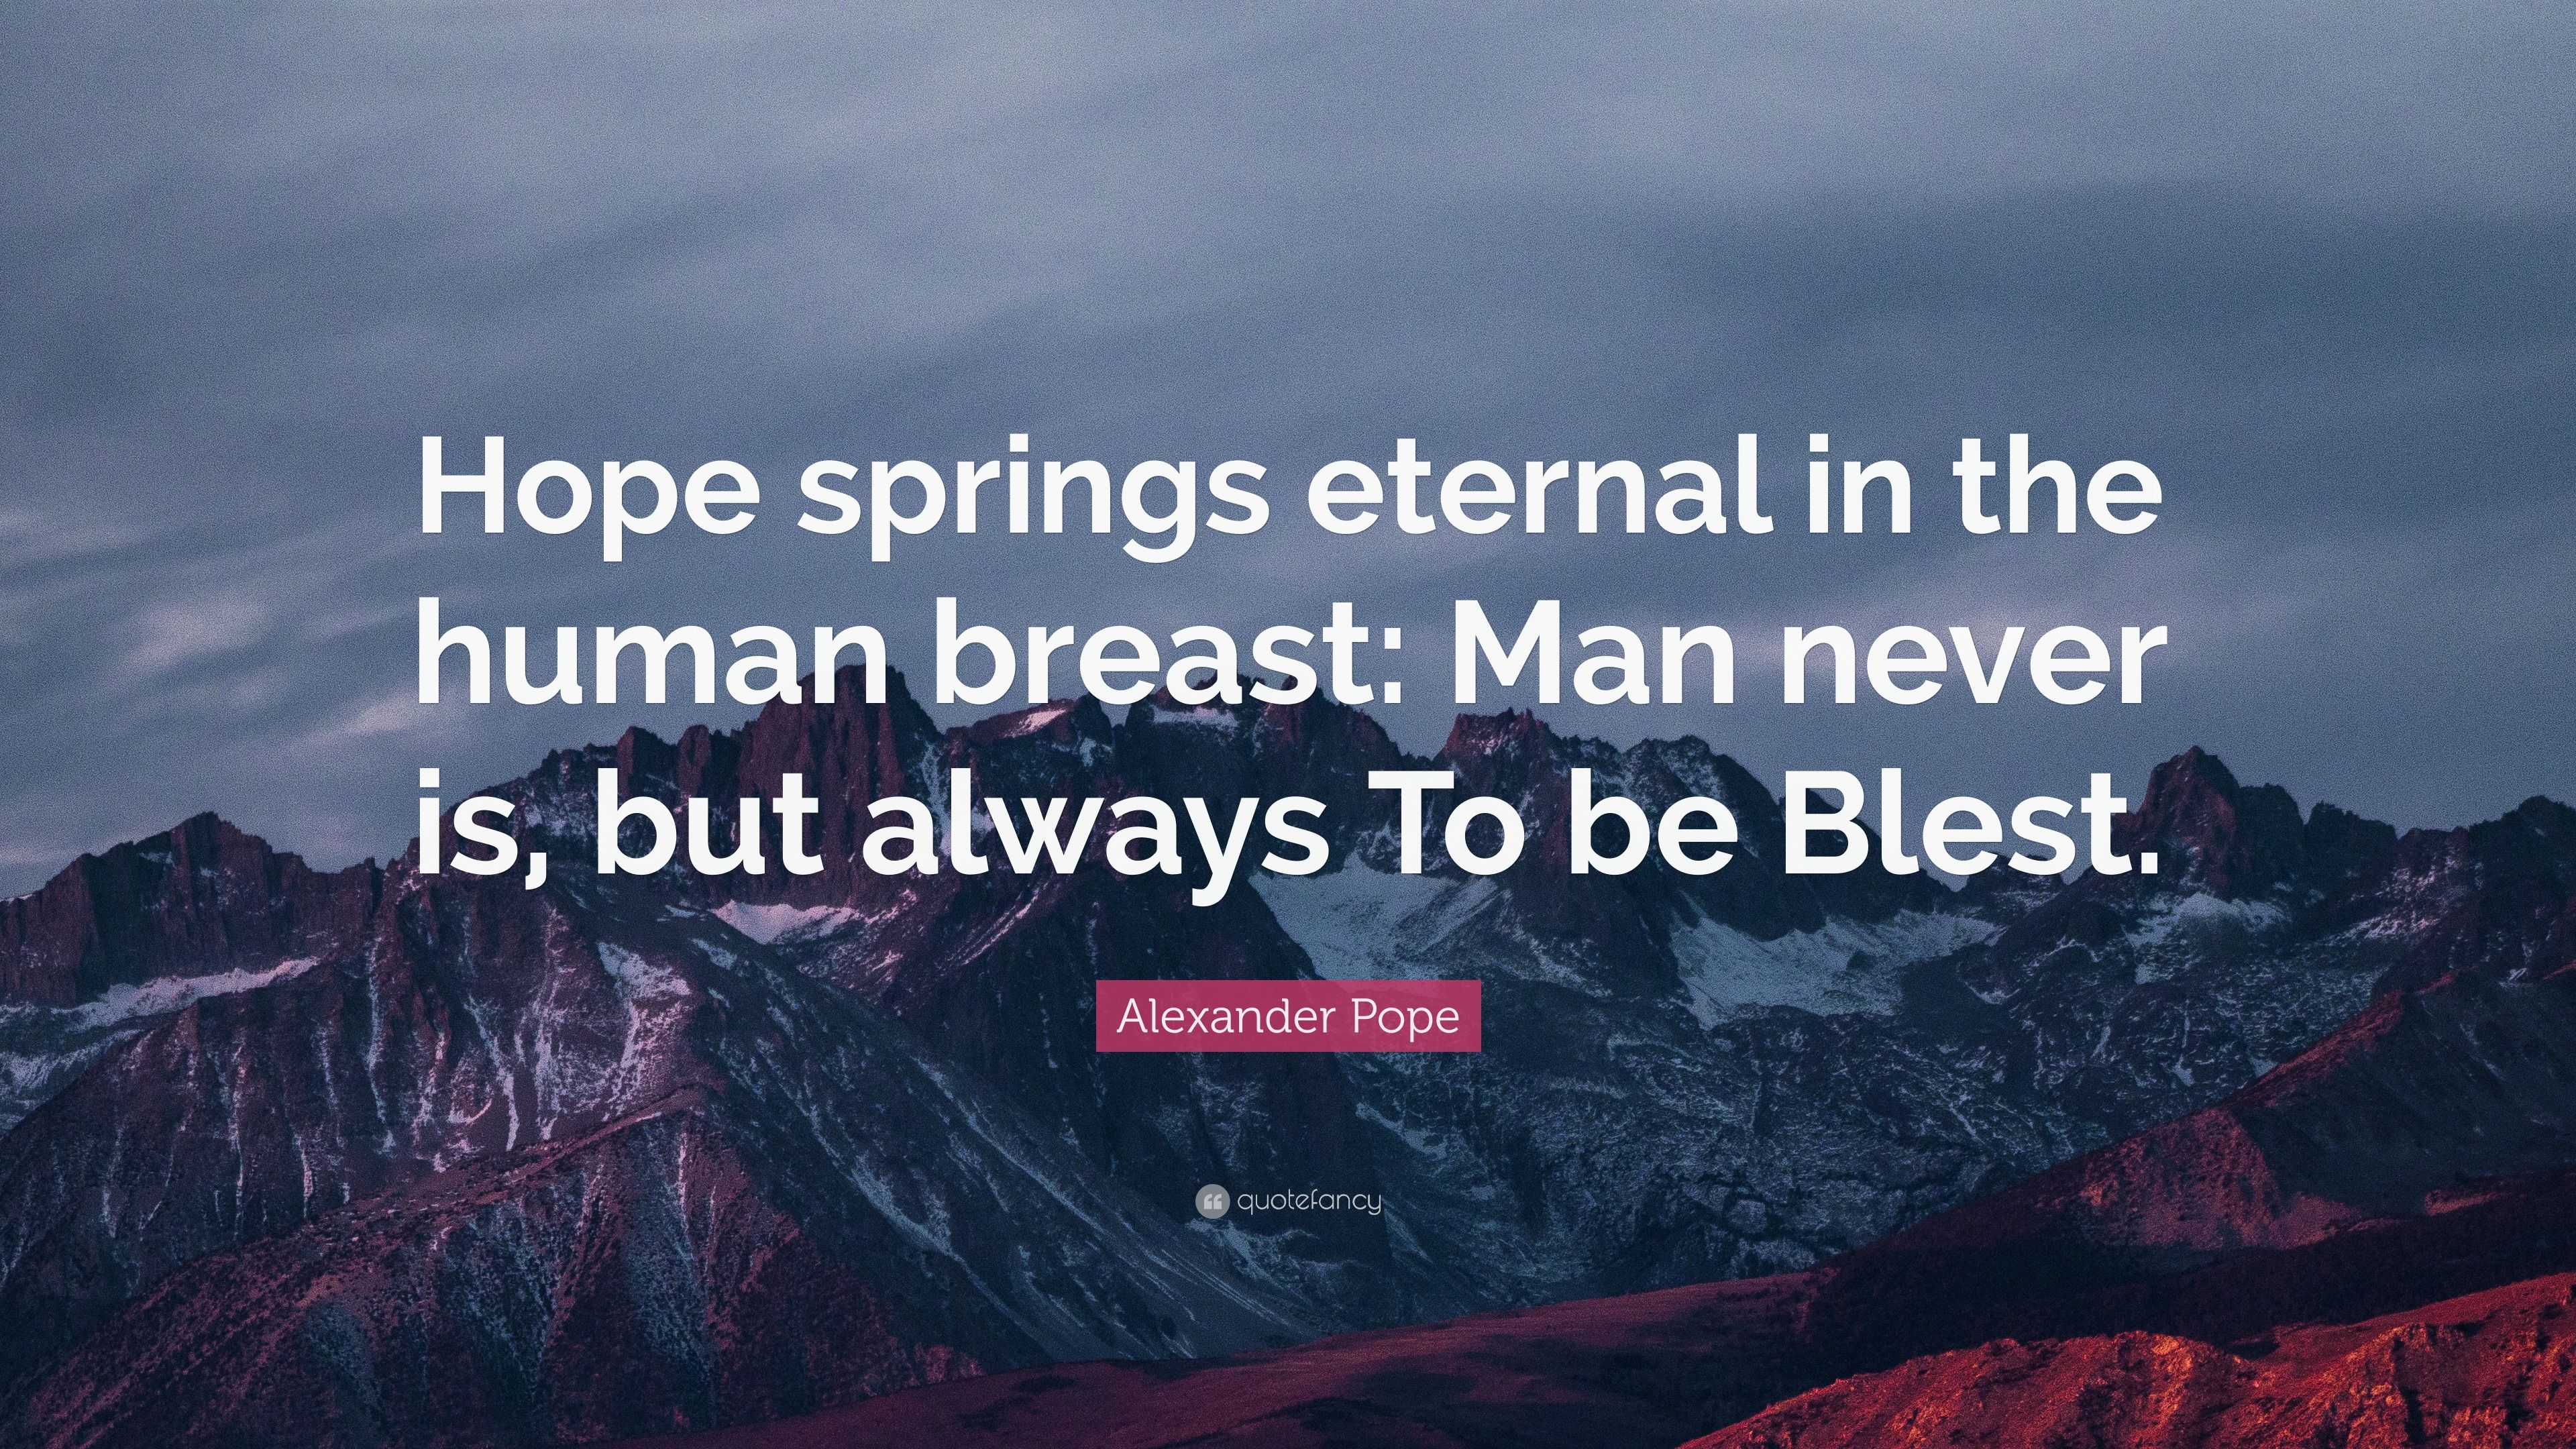 alexander pope essay on man hope springs eternal Hope springs eternal-alexander pope in an essay on man image credit: alabama-based blog i bleed crimson red 7:00 am edt 4/28/12 (forecaster mike n.